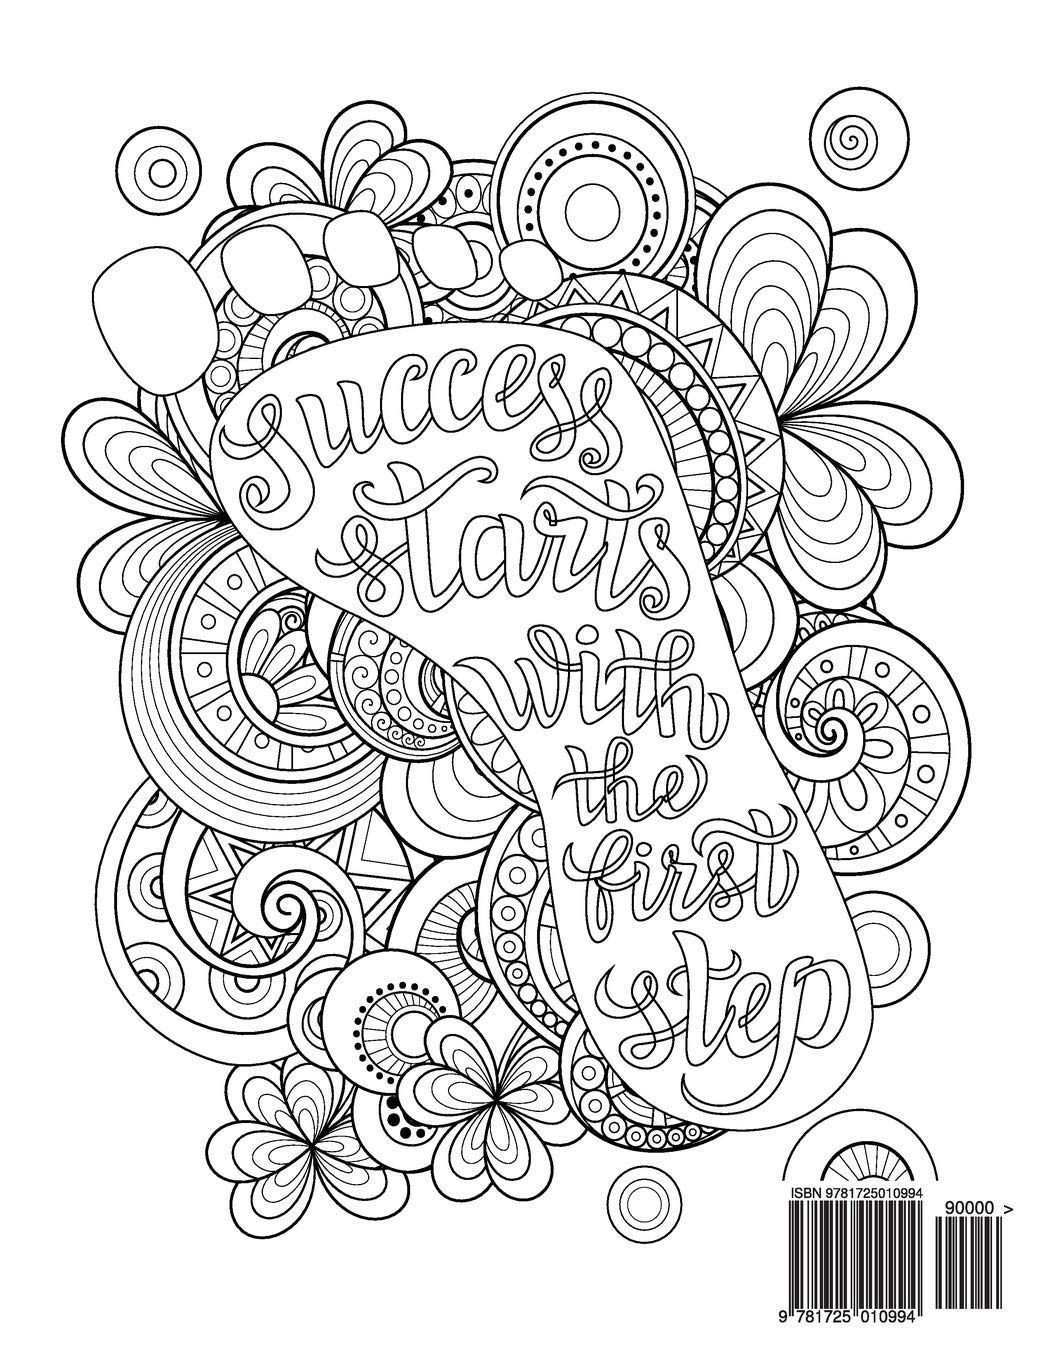 Adult Coloring Pages Amazon Com Adult Coloring Books Good Vibes Work Hard Dream Big Boo Love Coloring Pages Coloring Pages Inspirational Mandala Coloring Pages